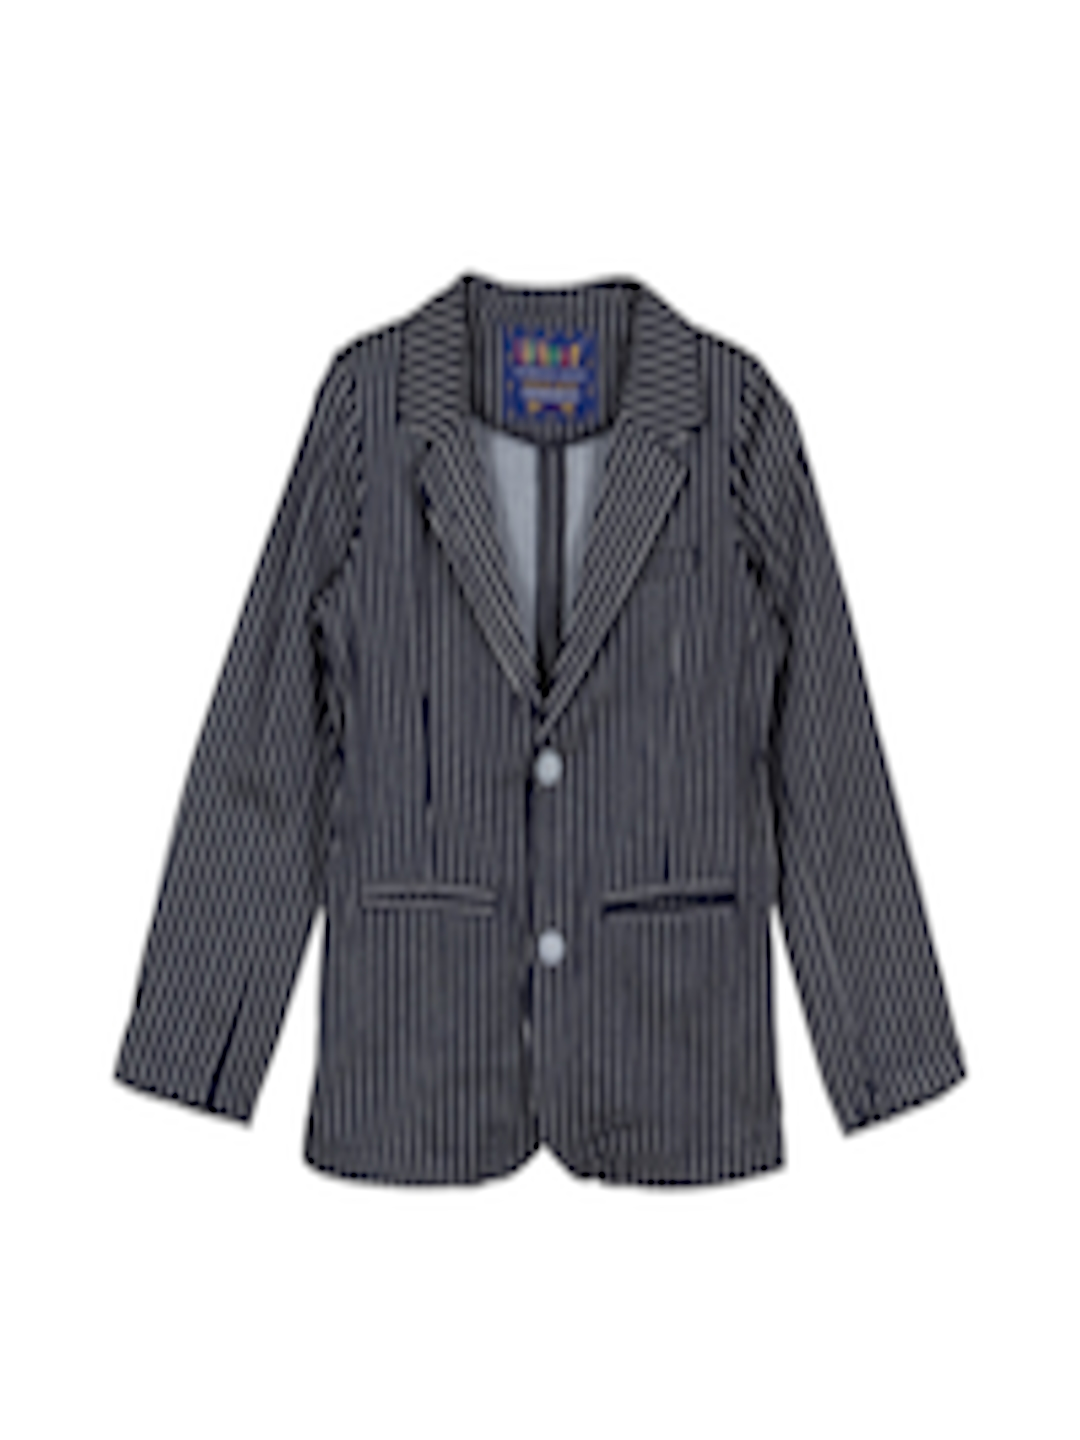 3290dcacb22f Buy Lilliput Boys Navy Striped Blazer - Blazers for Boys 1331293 ...